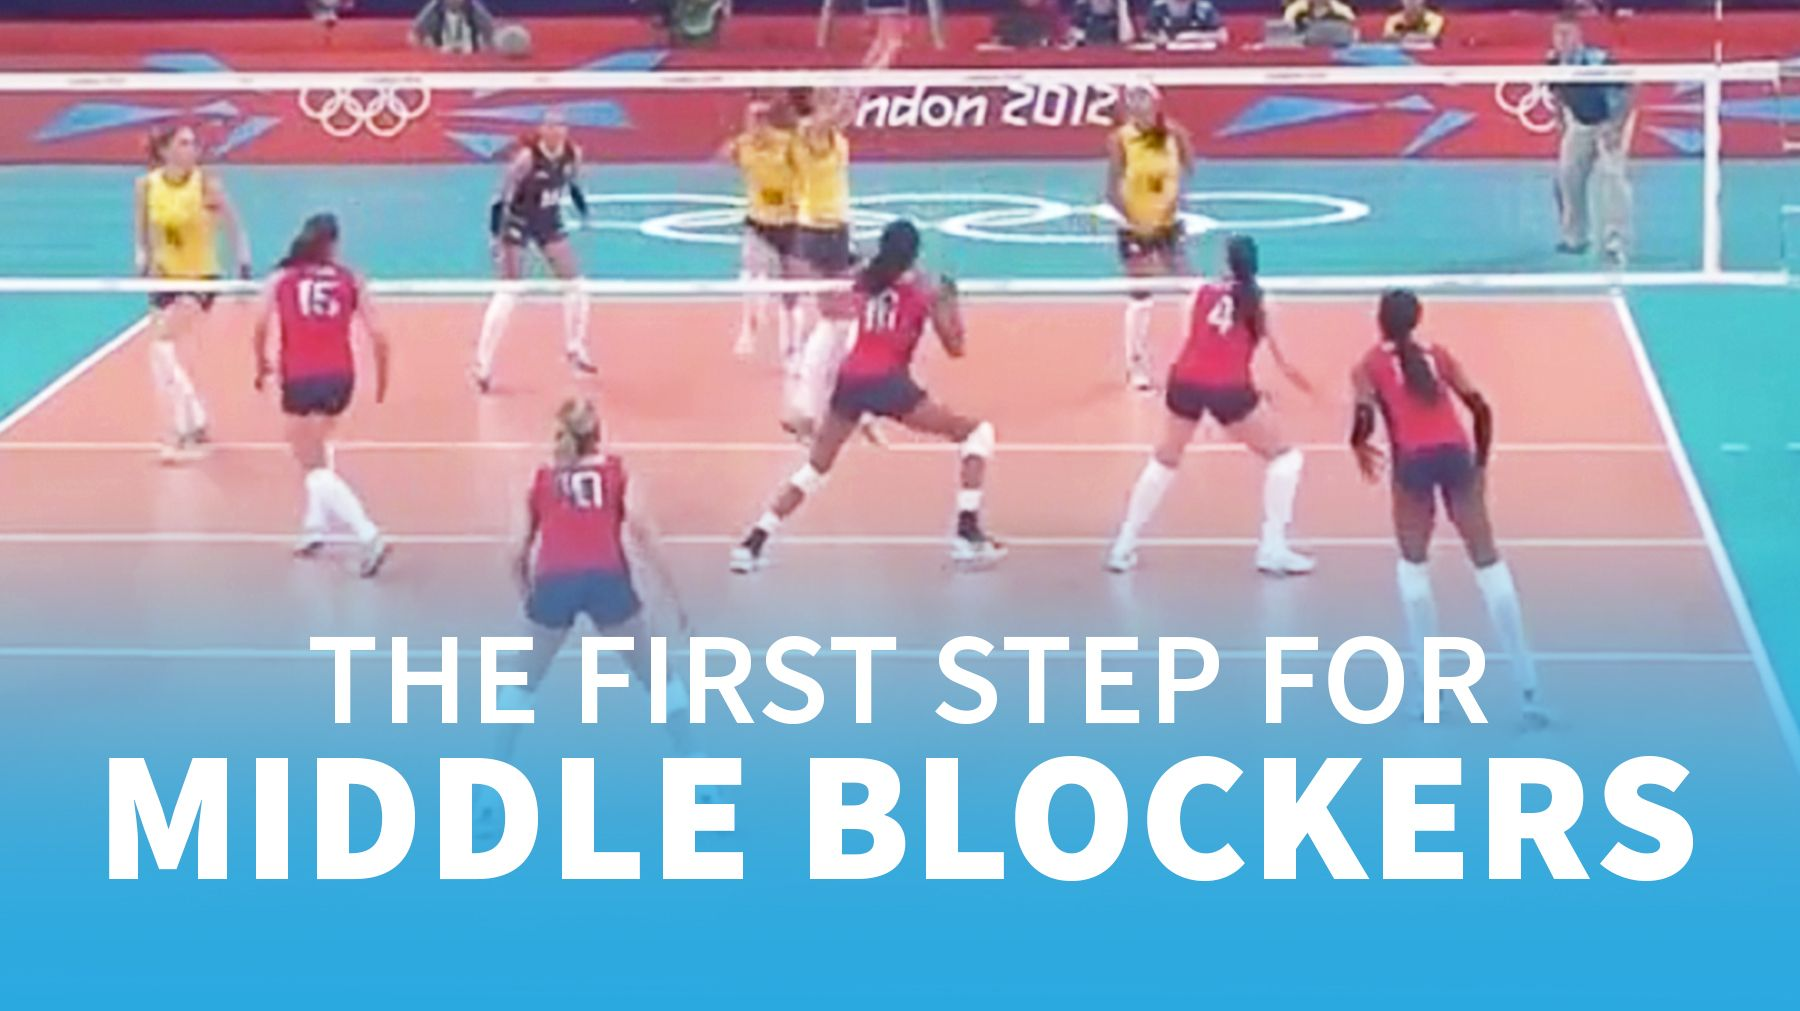 Jim Stone The Crucial First Step For Middle Blockers Skills Coaching Volleyball Volleyball Coaching